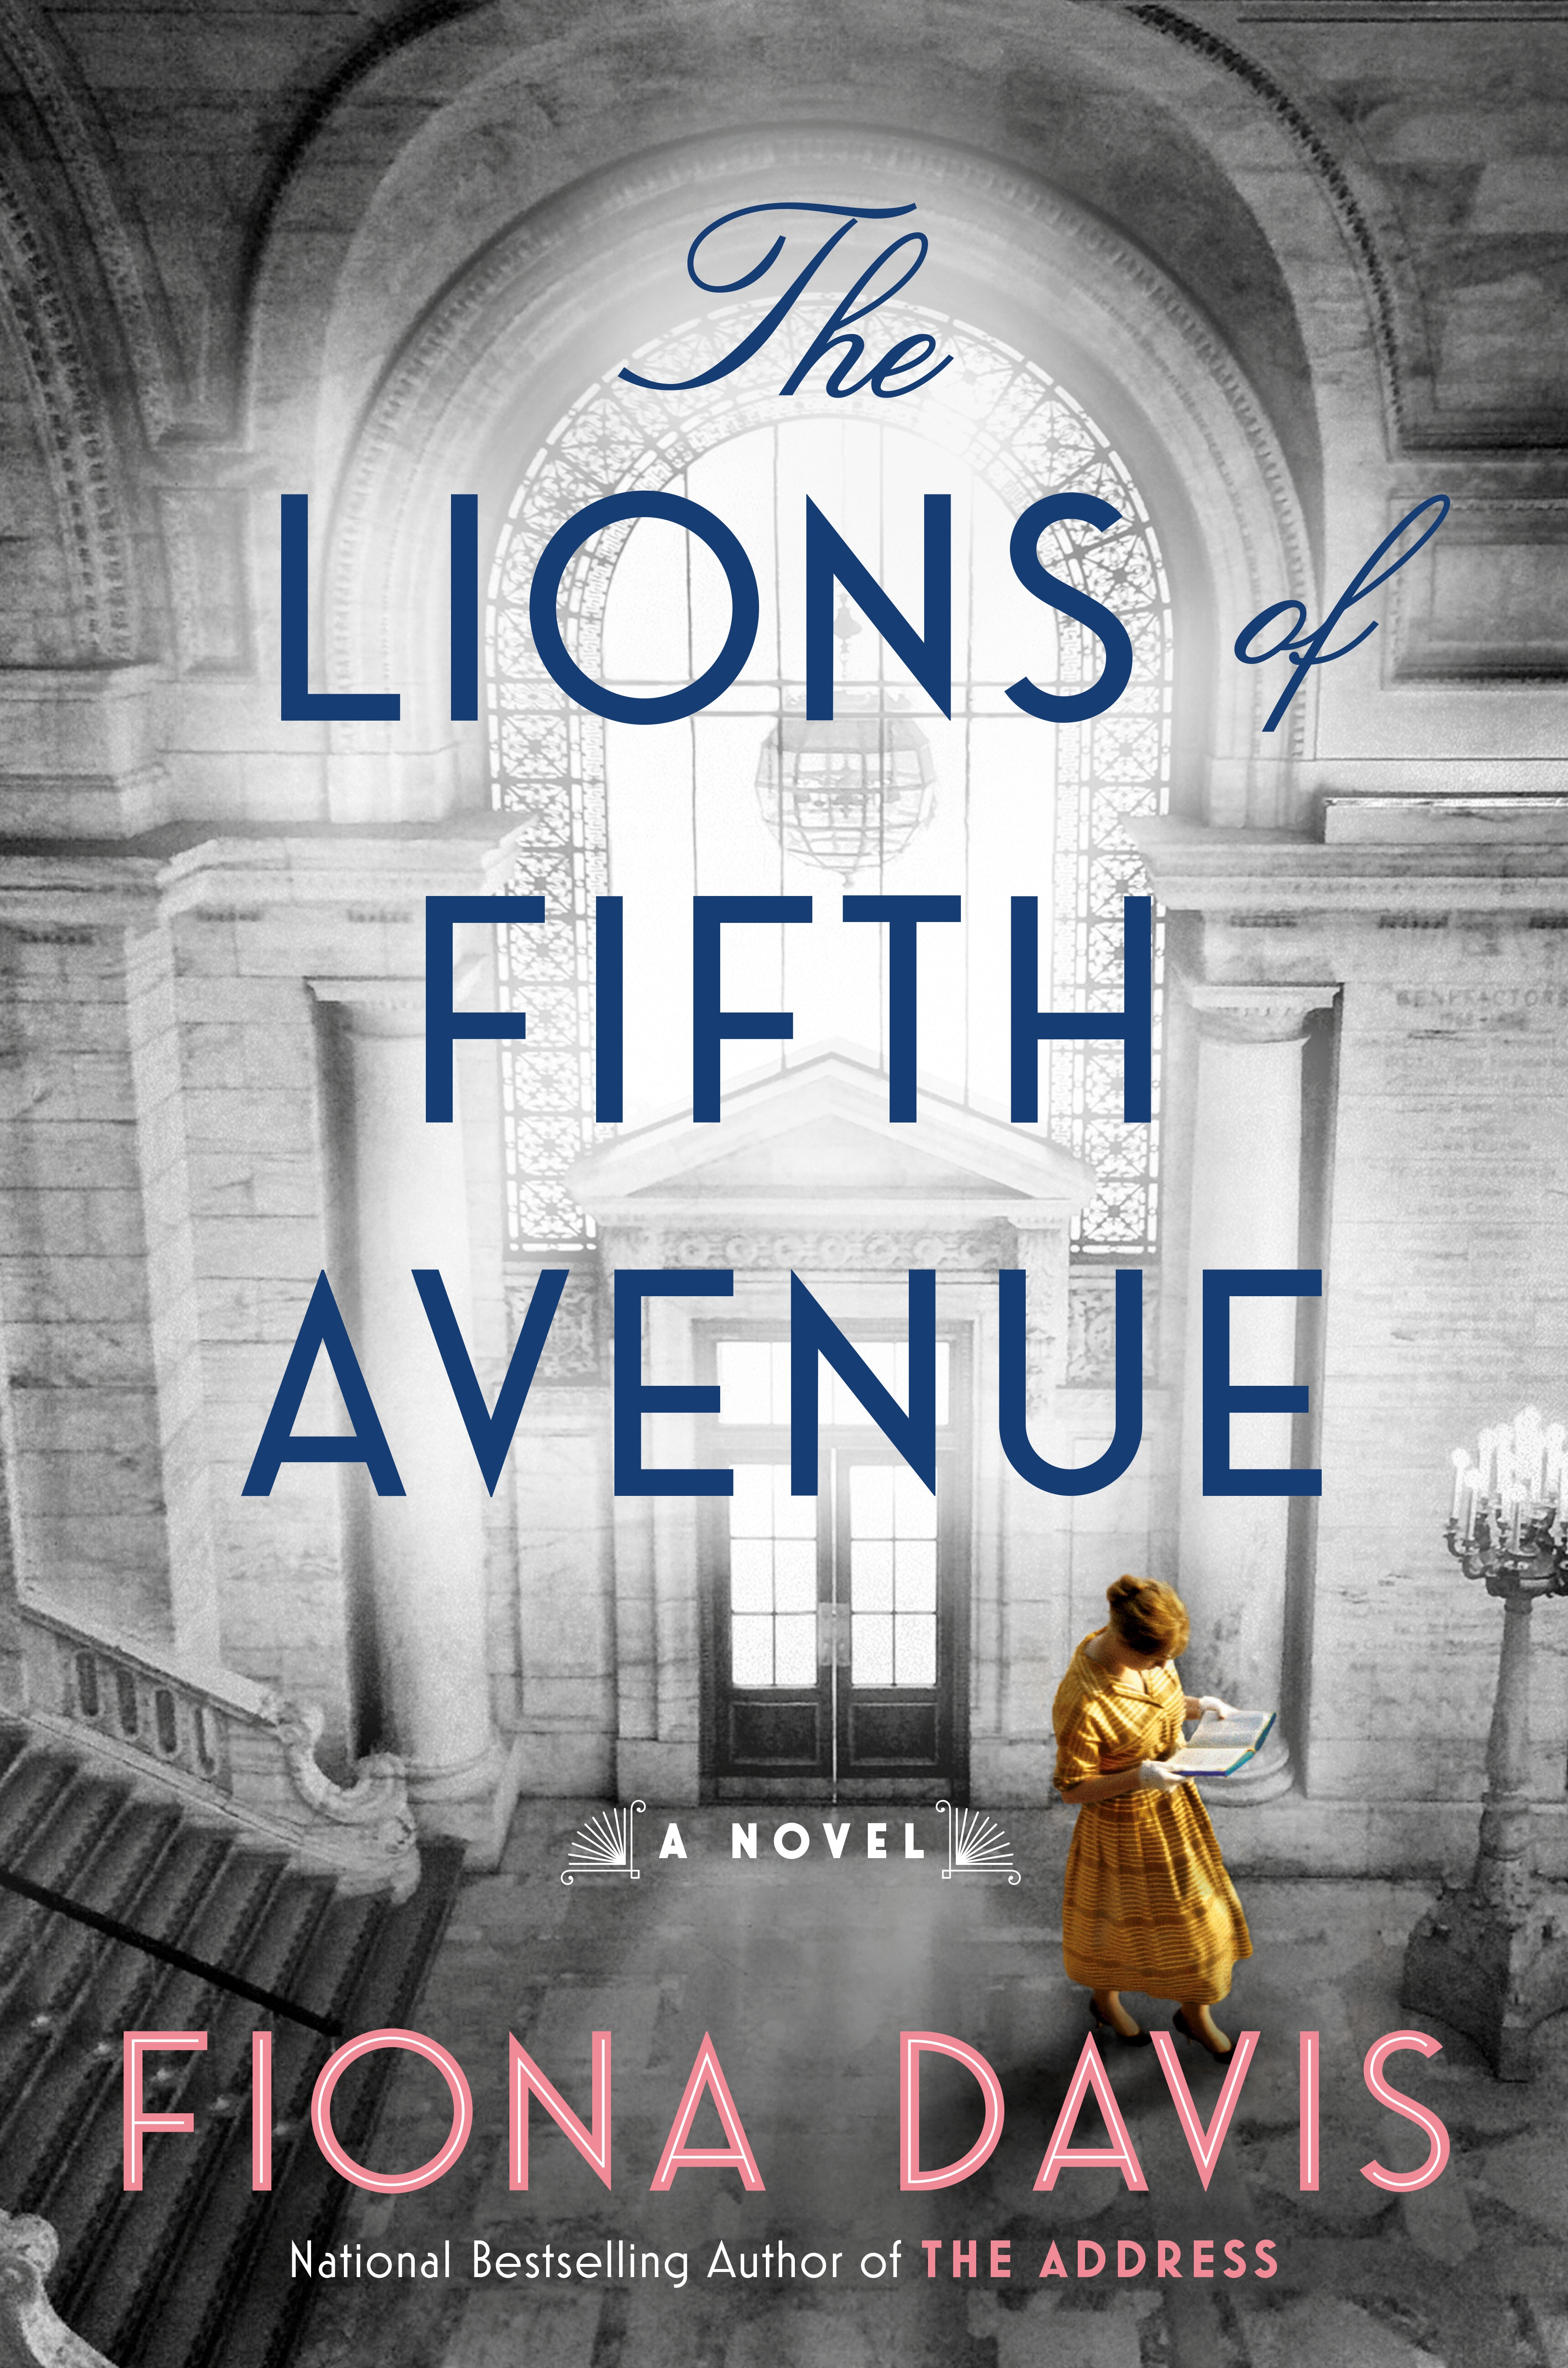 New mystery explores New York in the 1910s and 1990s